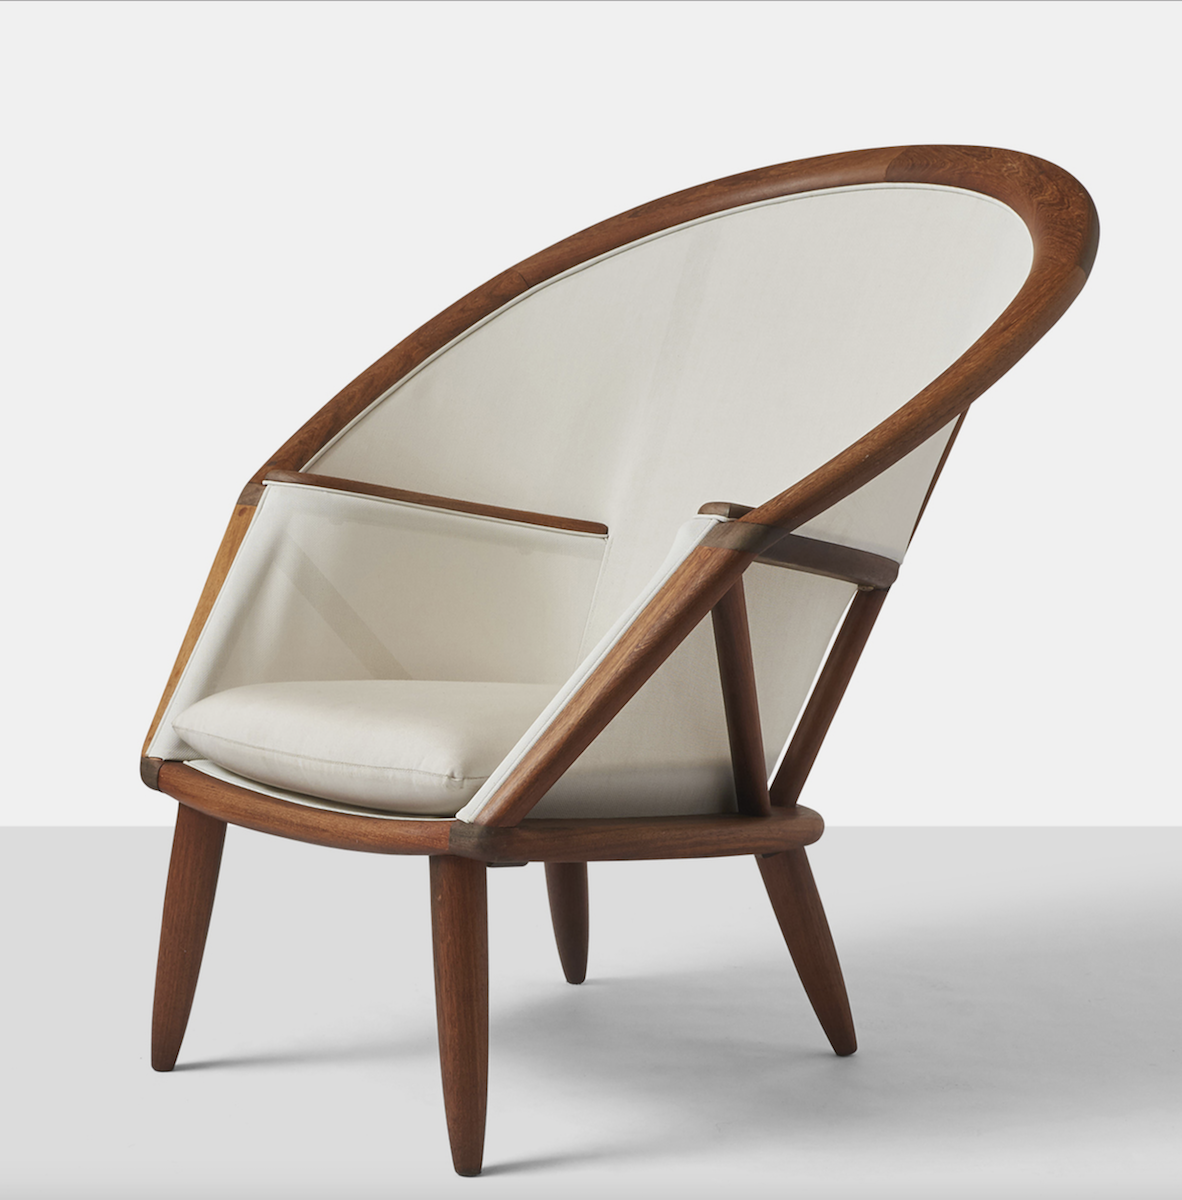 Nana Chair from Almond & Company, Bjorn Design